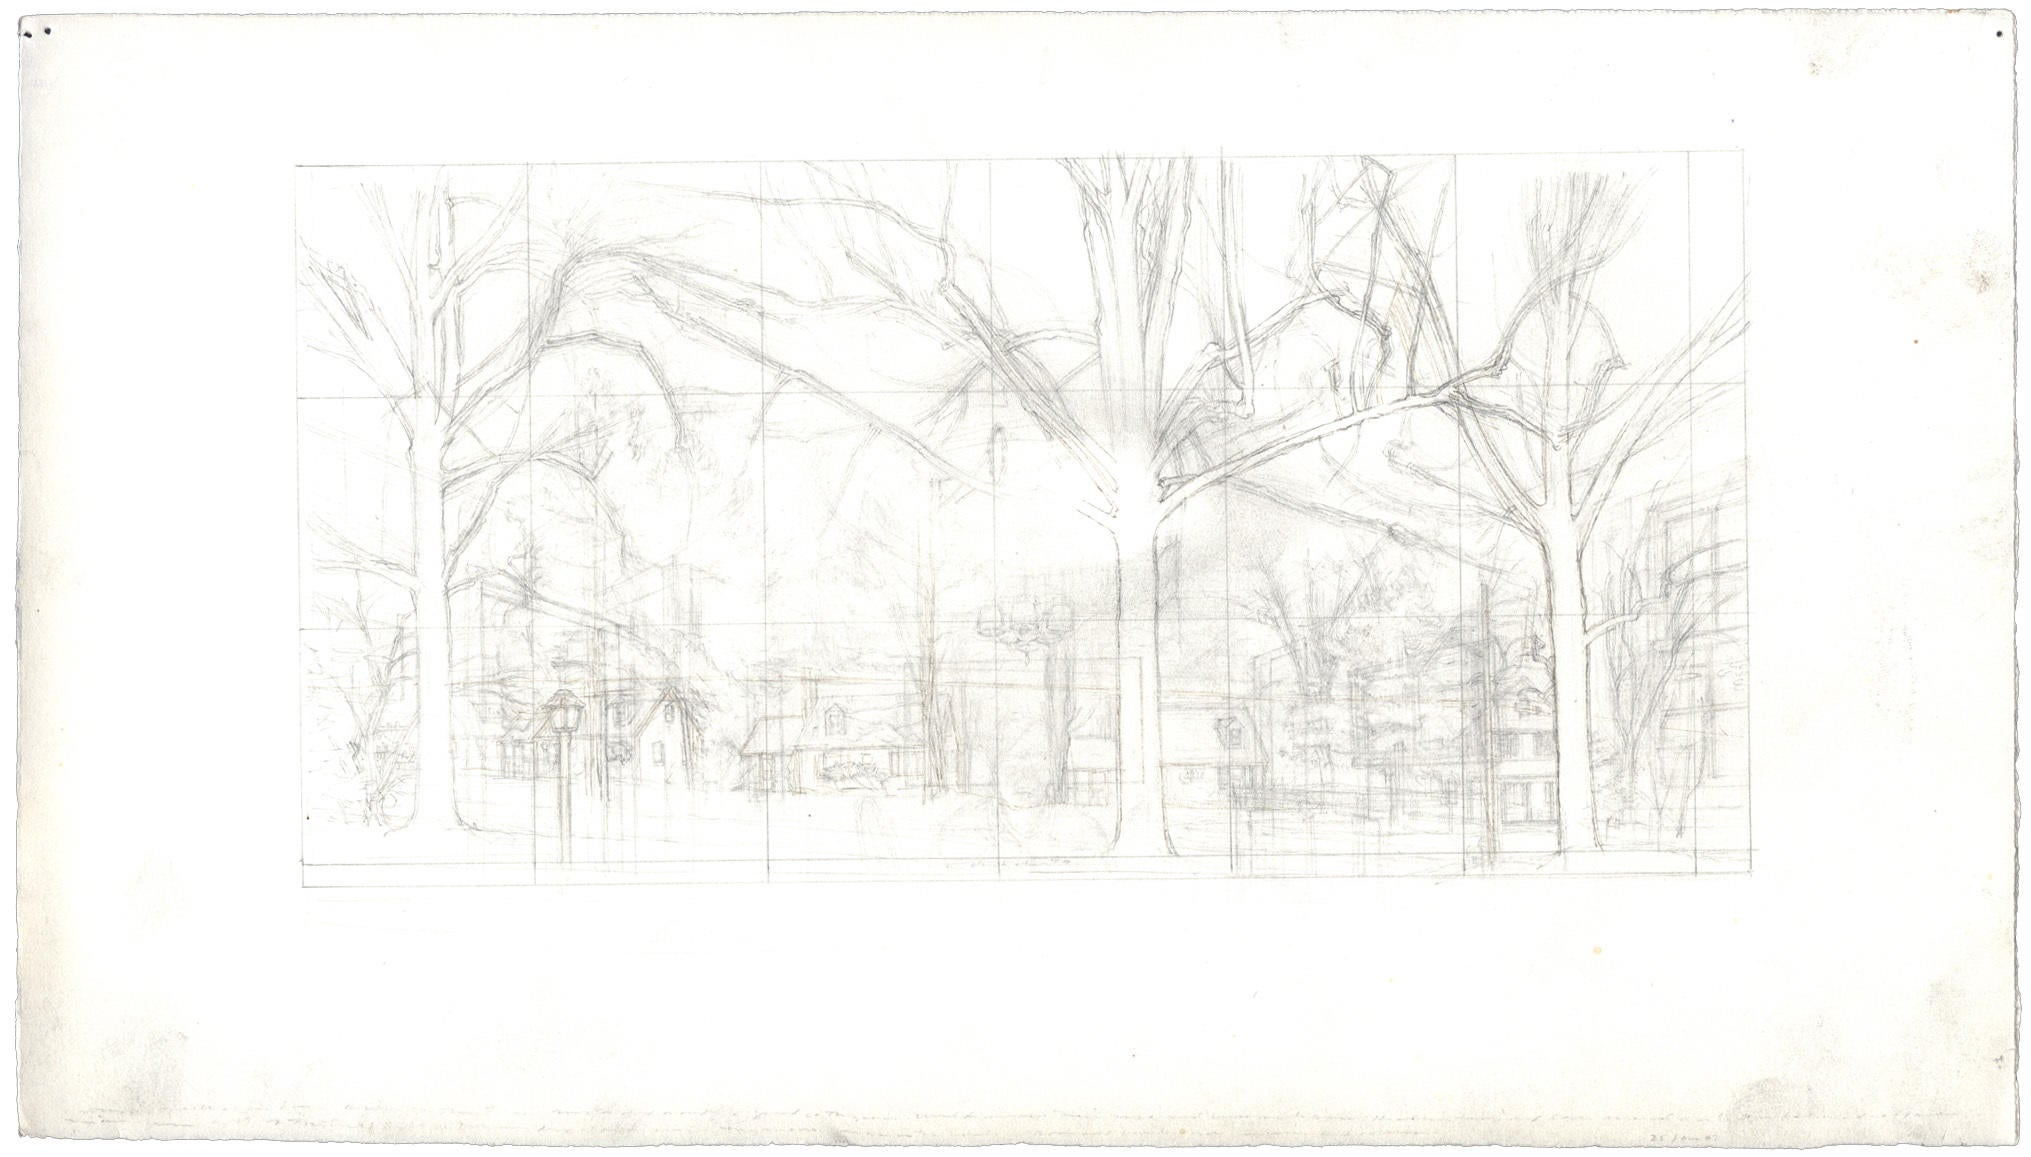 Study for Interior/Exterior: 25 January 1987 image